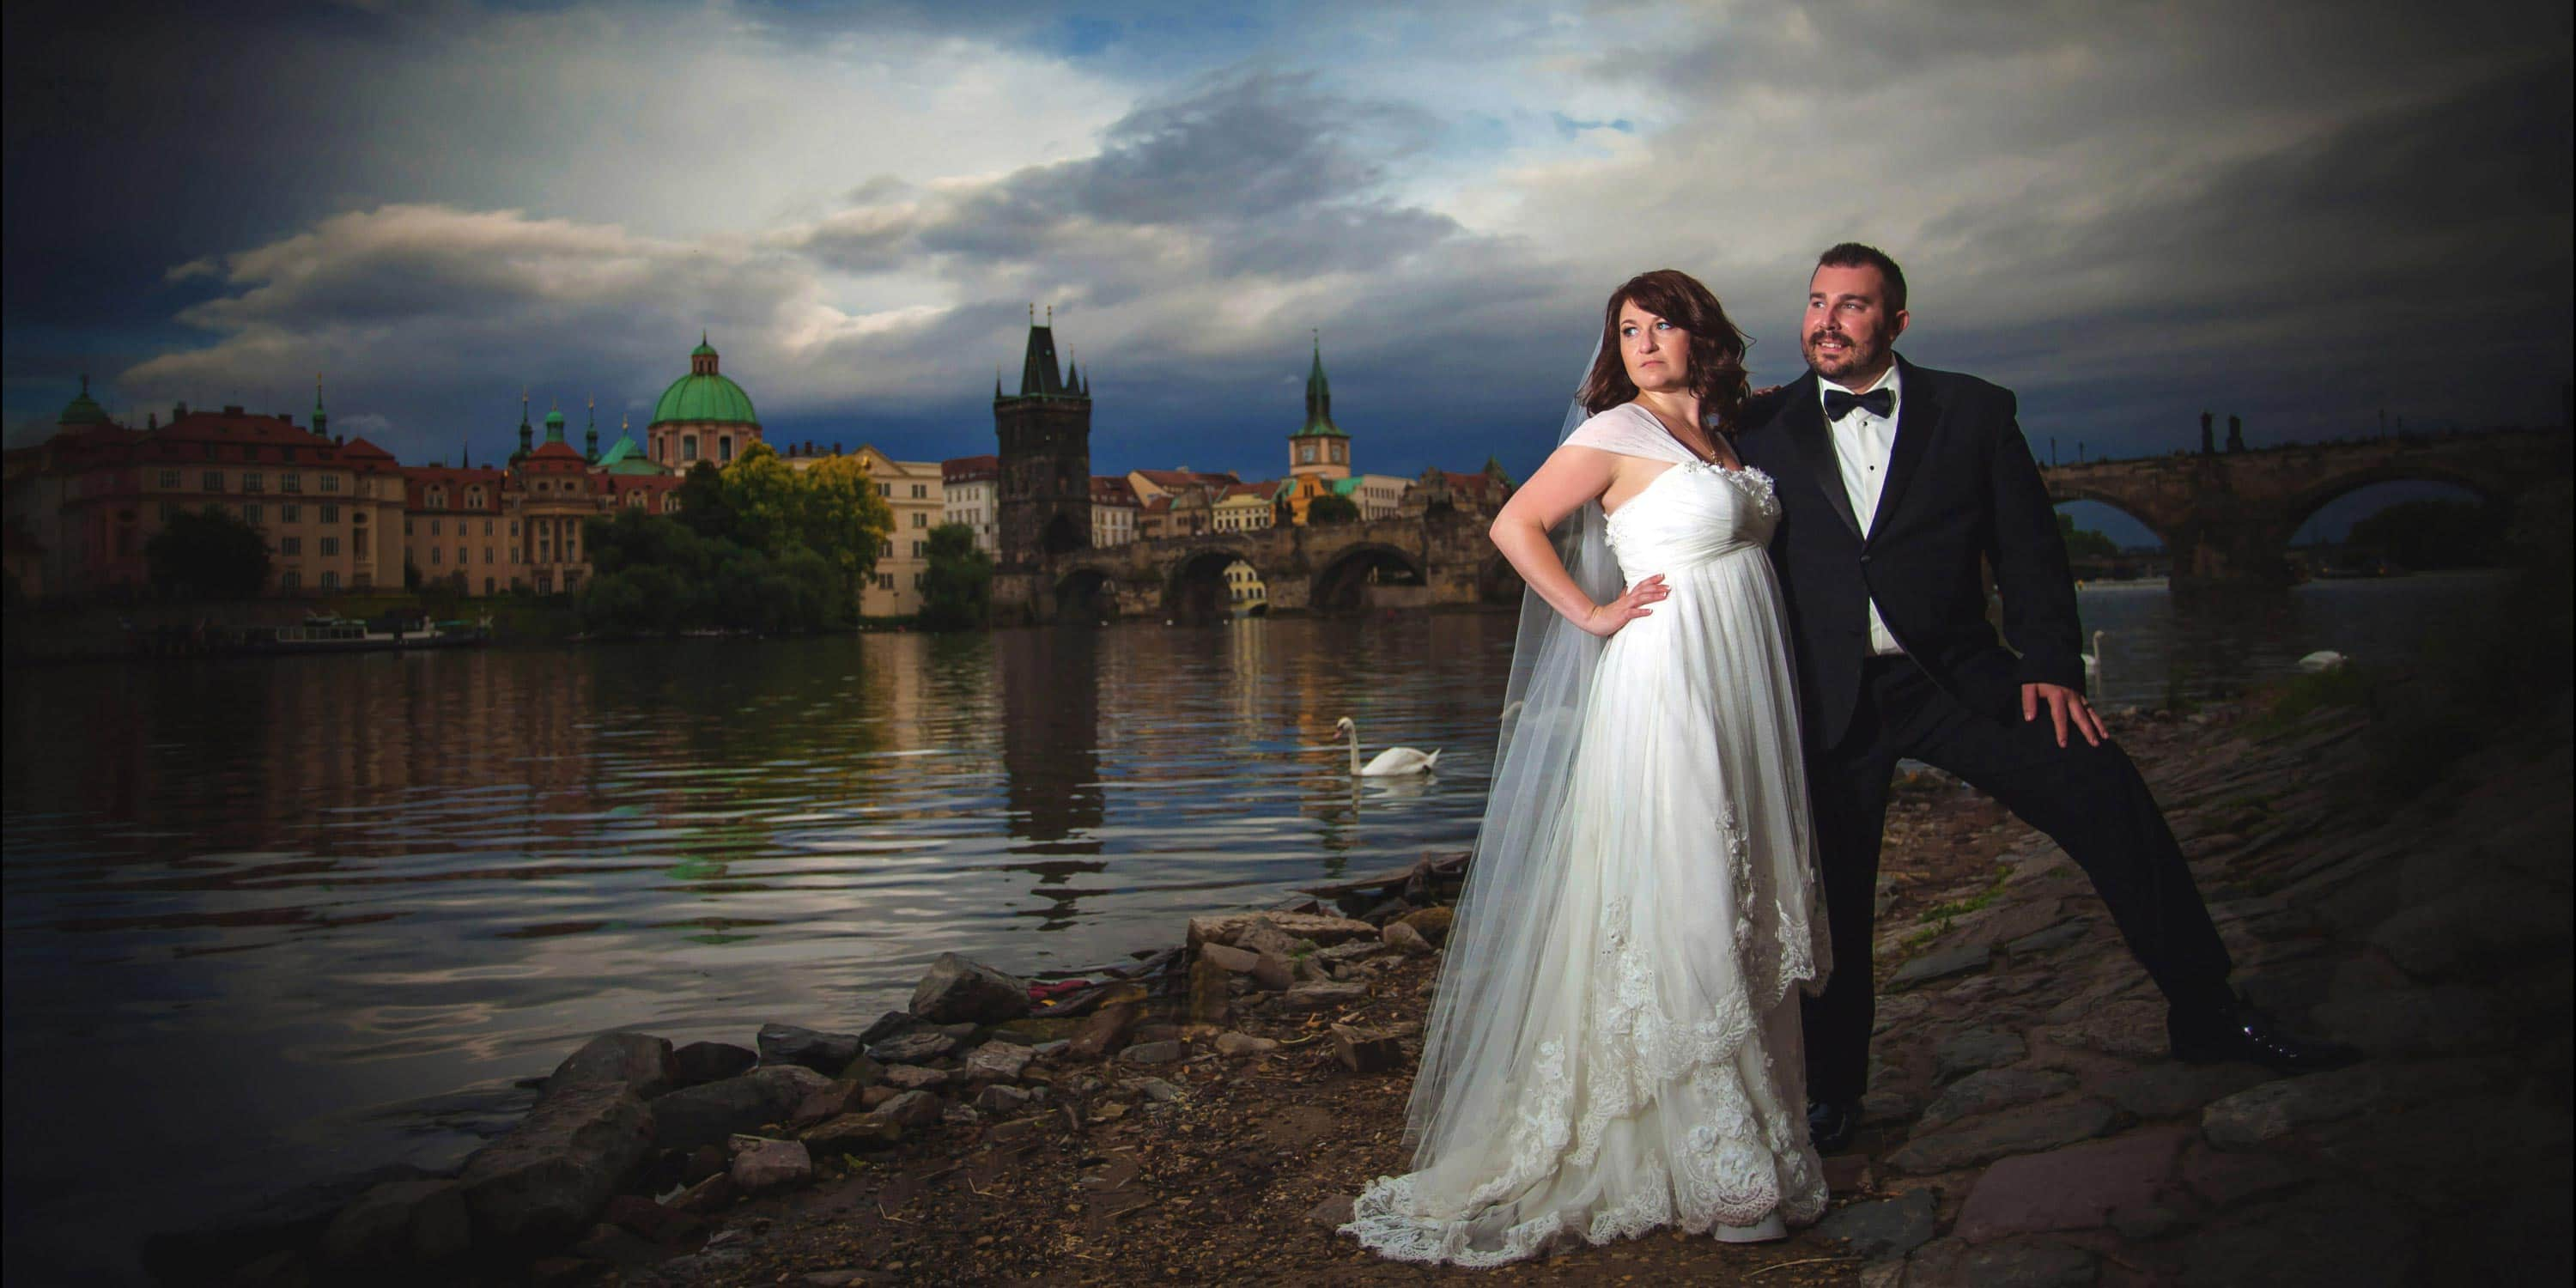 Prague elopement wedding / Kathryn & Travis (USA) wedding day!